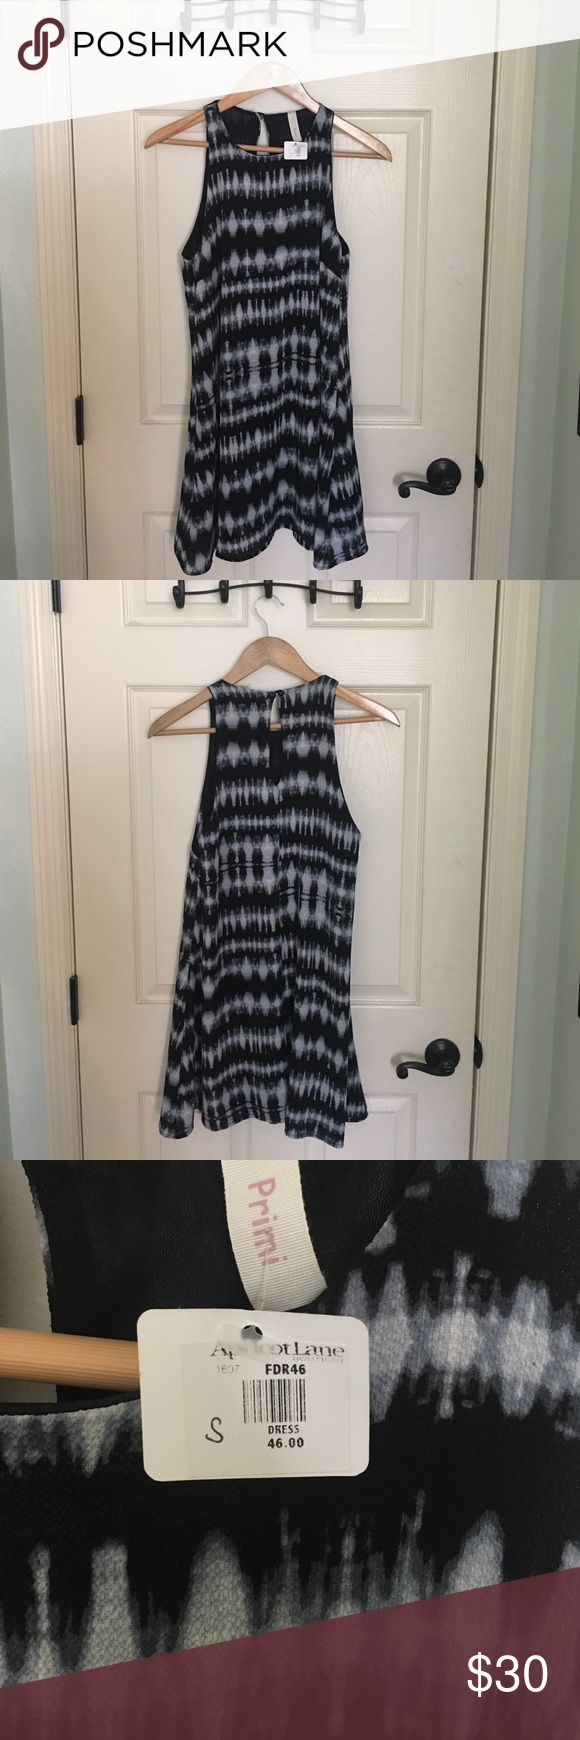 NWT: Apricot Lane (Boutique) Dress Super cute! Never wore it - It's too baggy on me. Dresses Midi